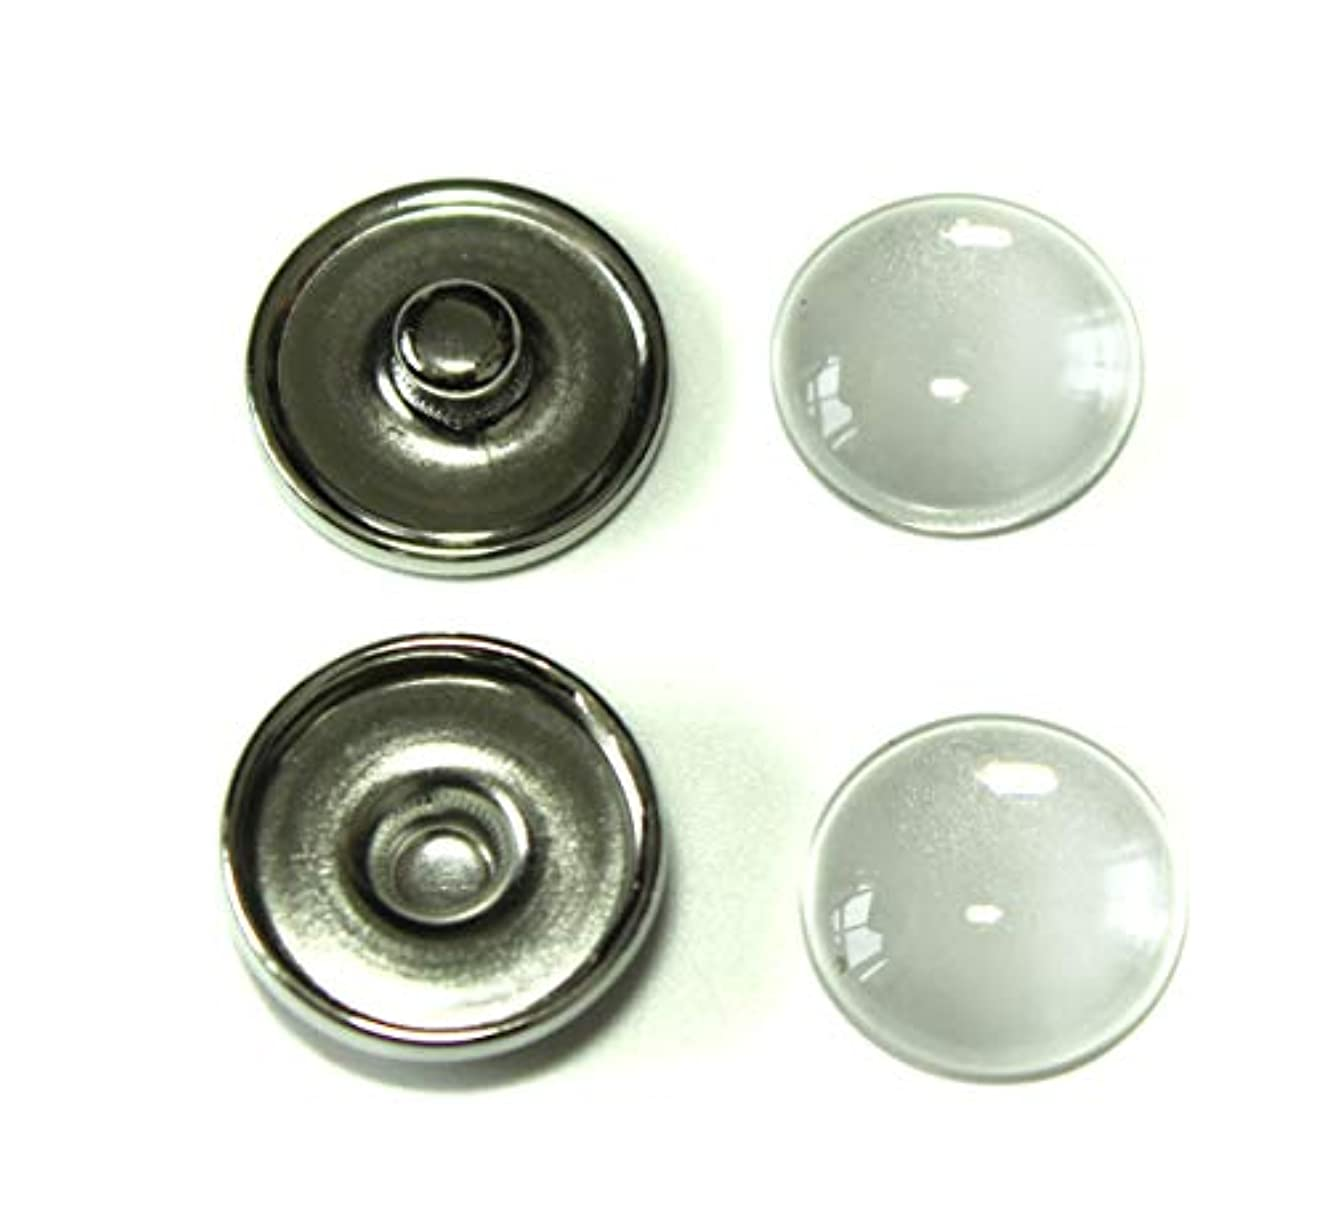 ALL in ONE Flat Round Platinum Snap Button Cabochon Tray (18mm with Glass Cabochons - 20 Sets)